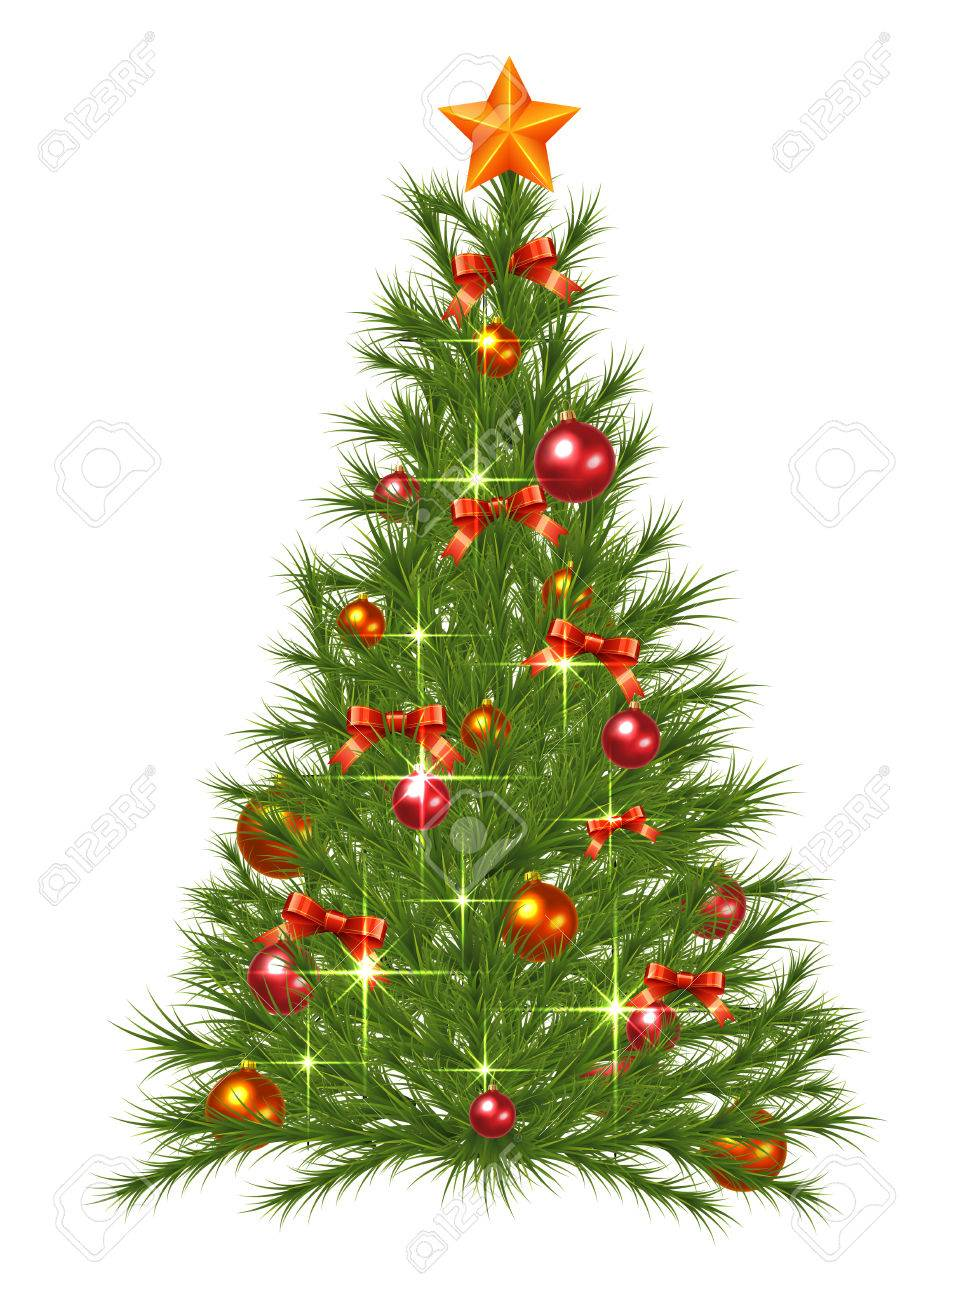 Decorated Christmas Fir Tree Royalty Free Cliparts Vectors And Stock Illustration Image 23893911